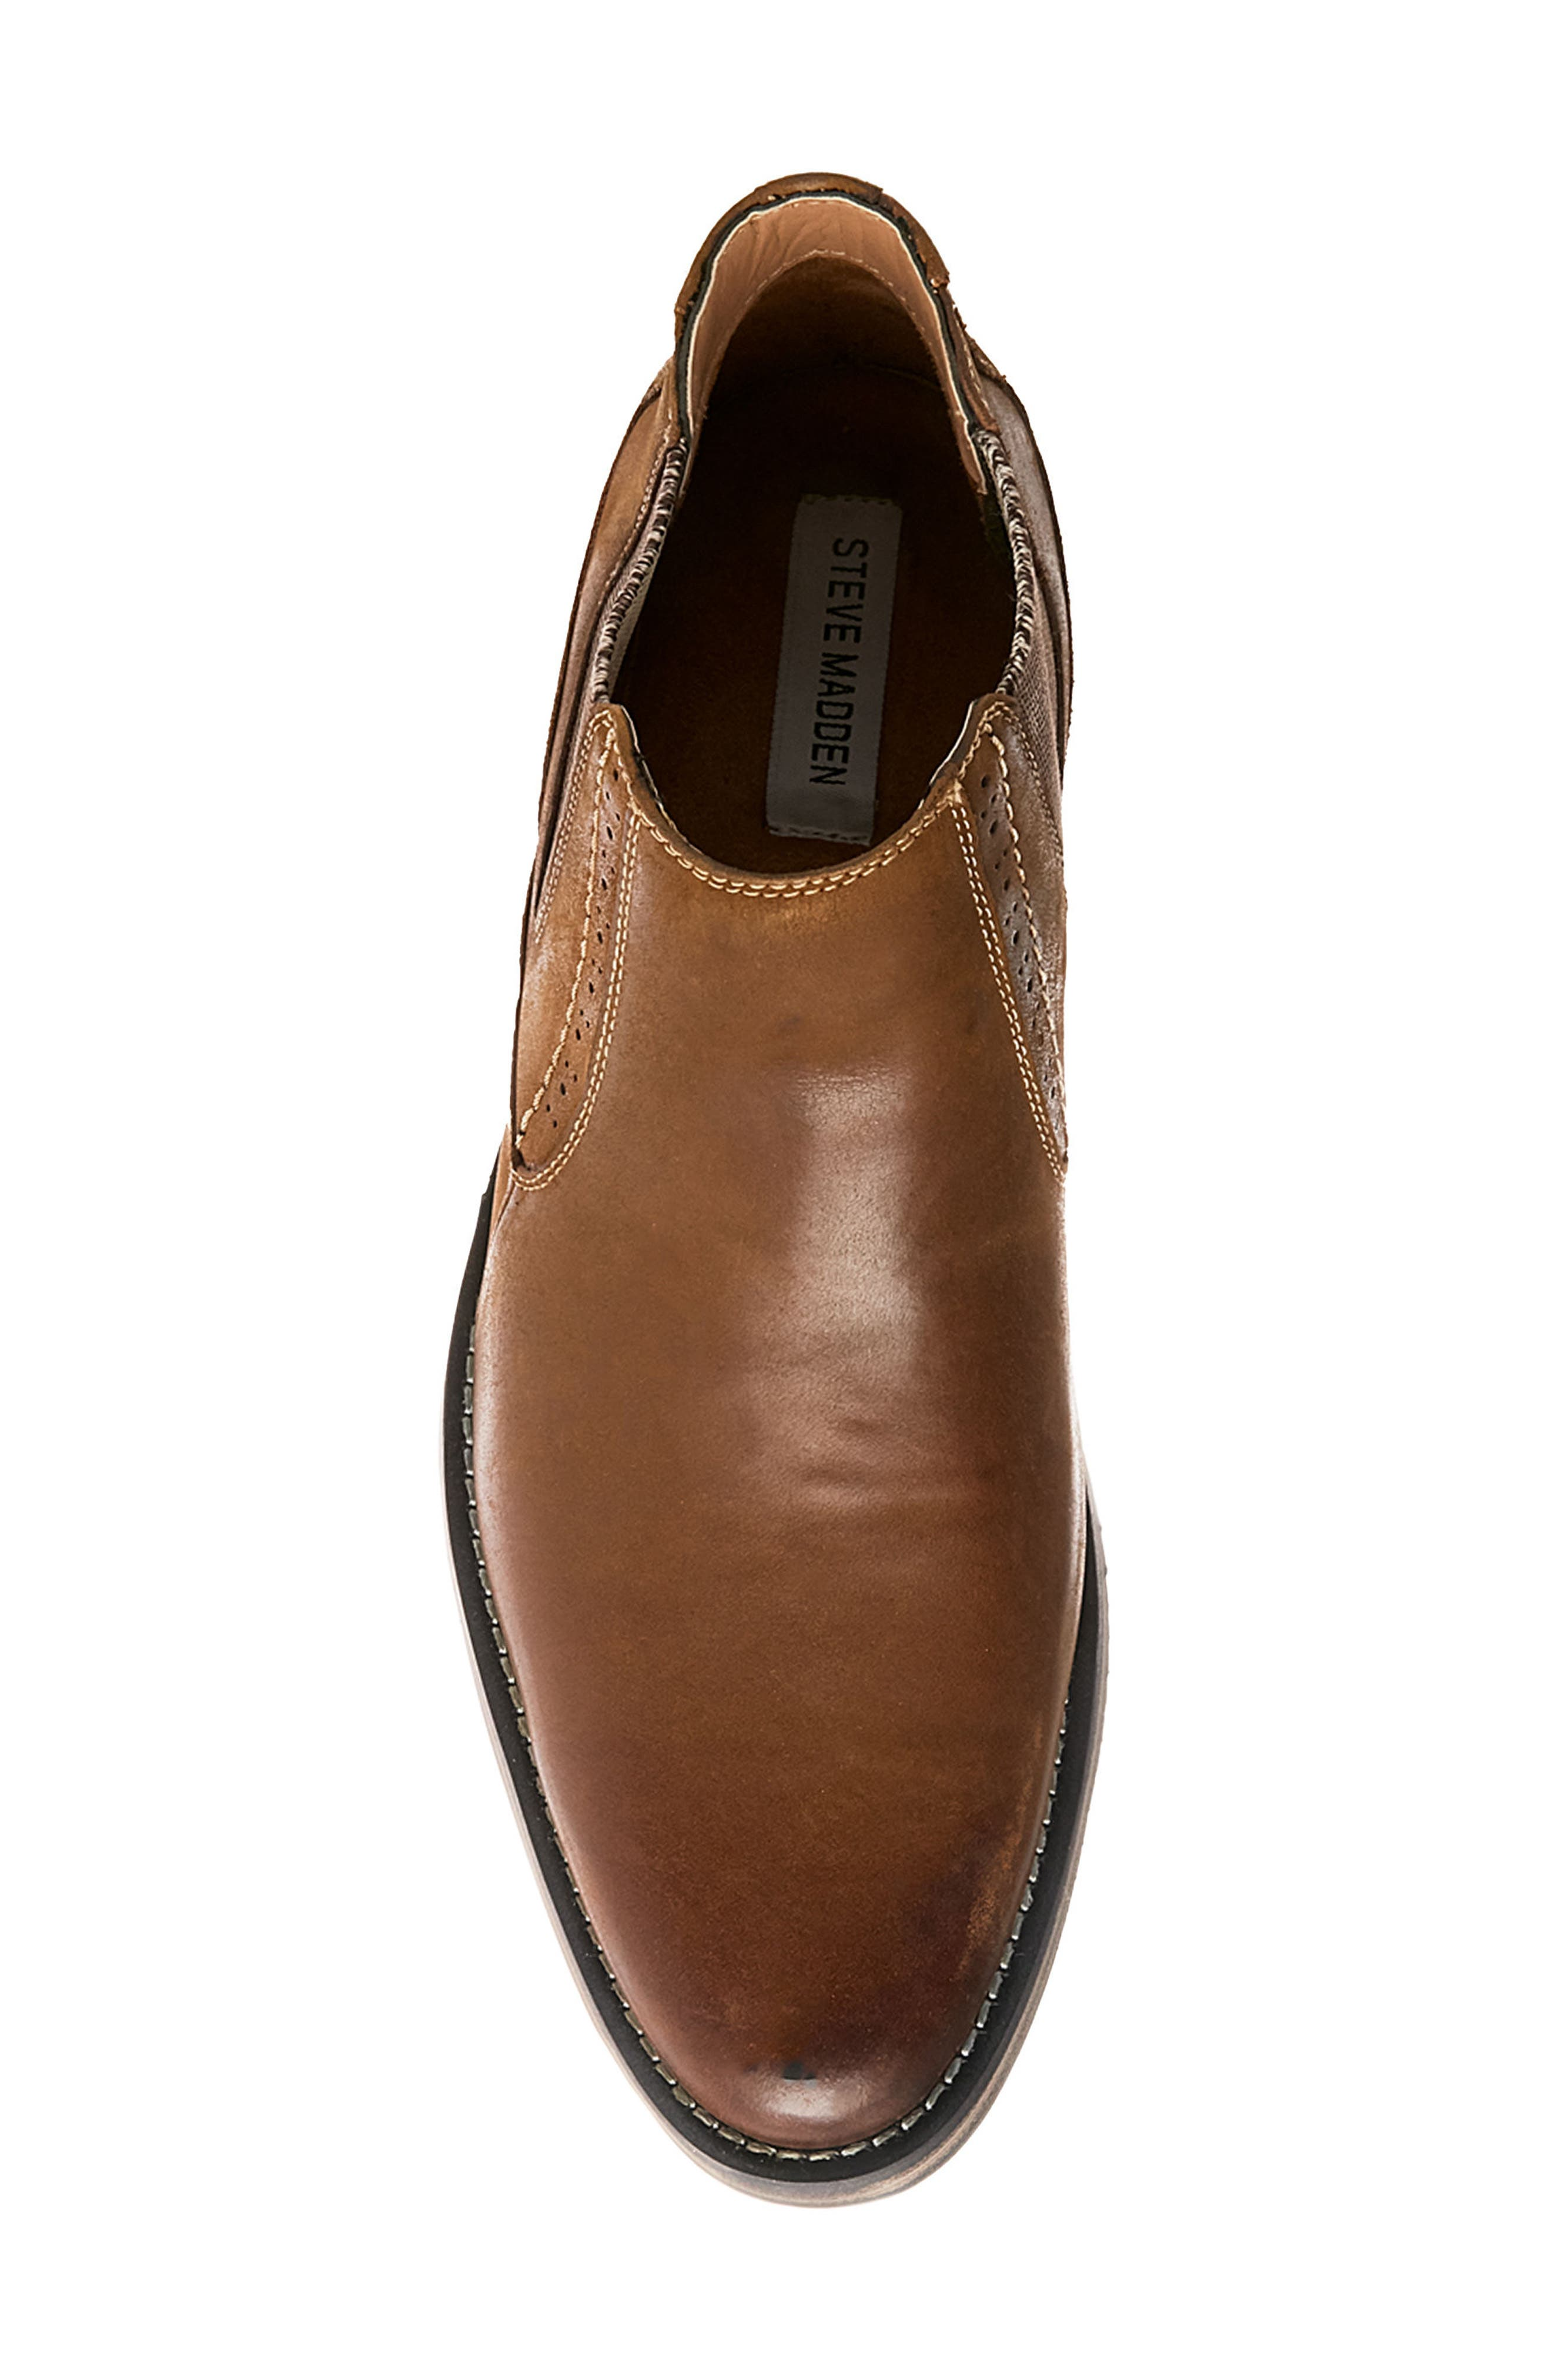 Paxton Chelsea Boot,                             Alternate thumbnail 5, color,                             Camel Leather